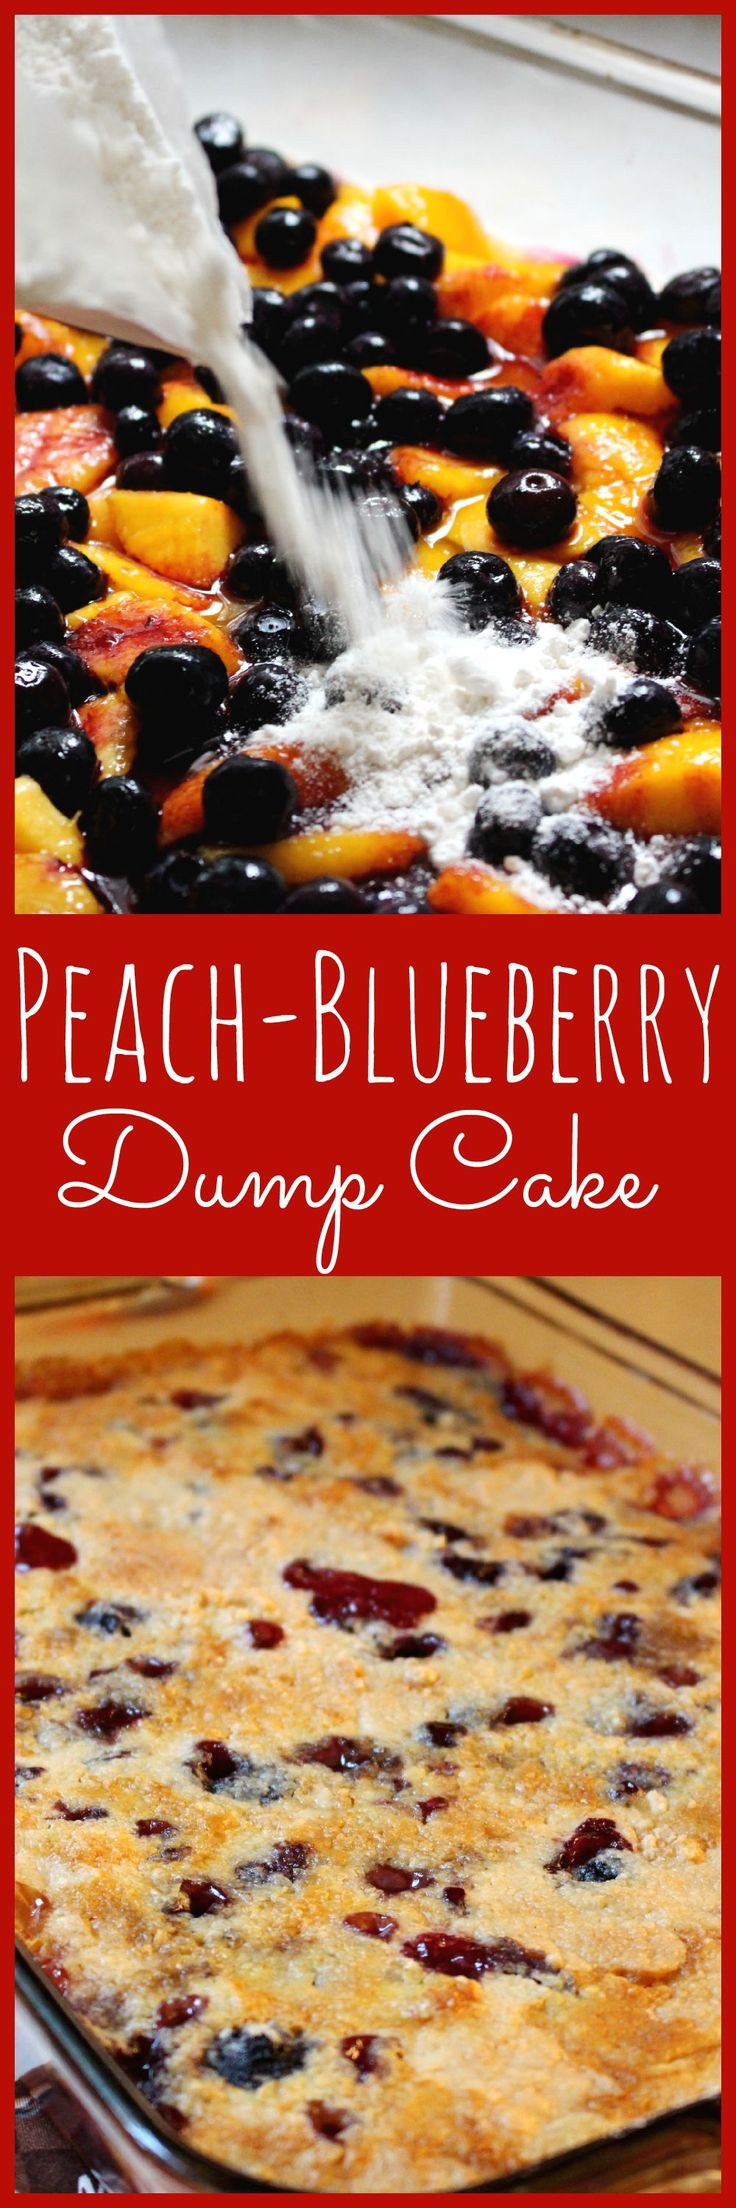 So Easy, So delicious PEACH-BLUEBERRY DUMP CAKE!